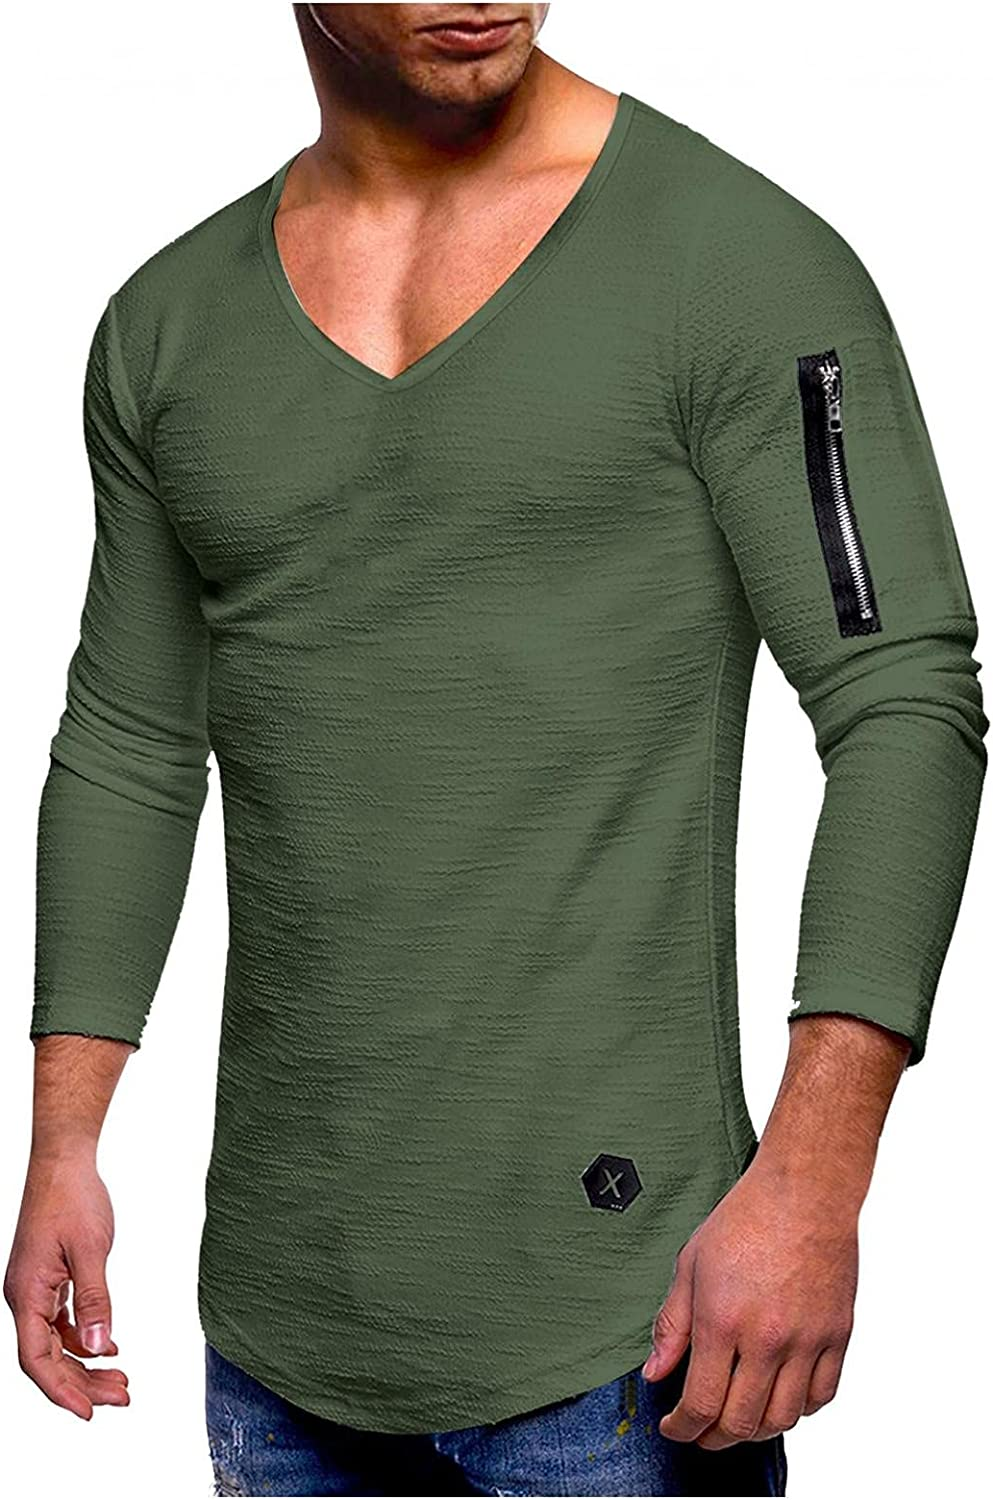 Long Sleeve Tee Shirts for Men V-neck Fashion Athletic Sweatshirt Casual Muscle T-Shirts Sport Pullover Tops